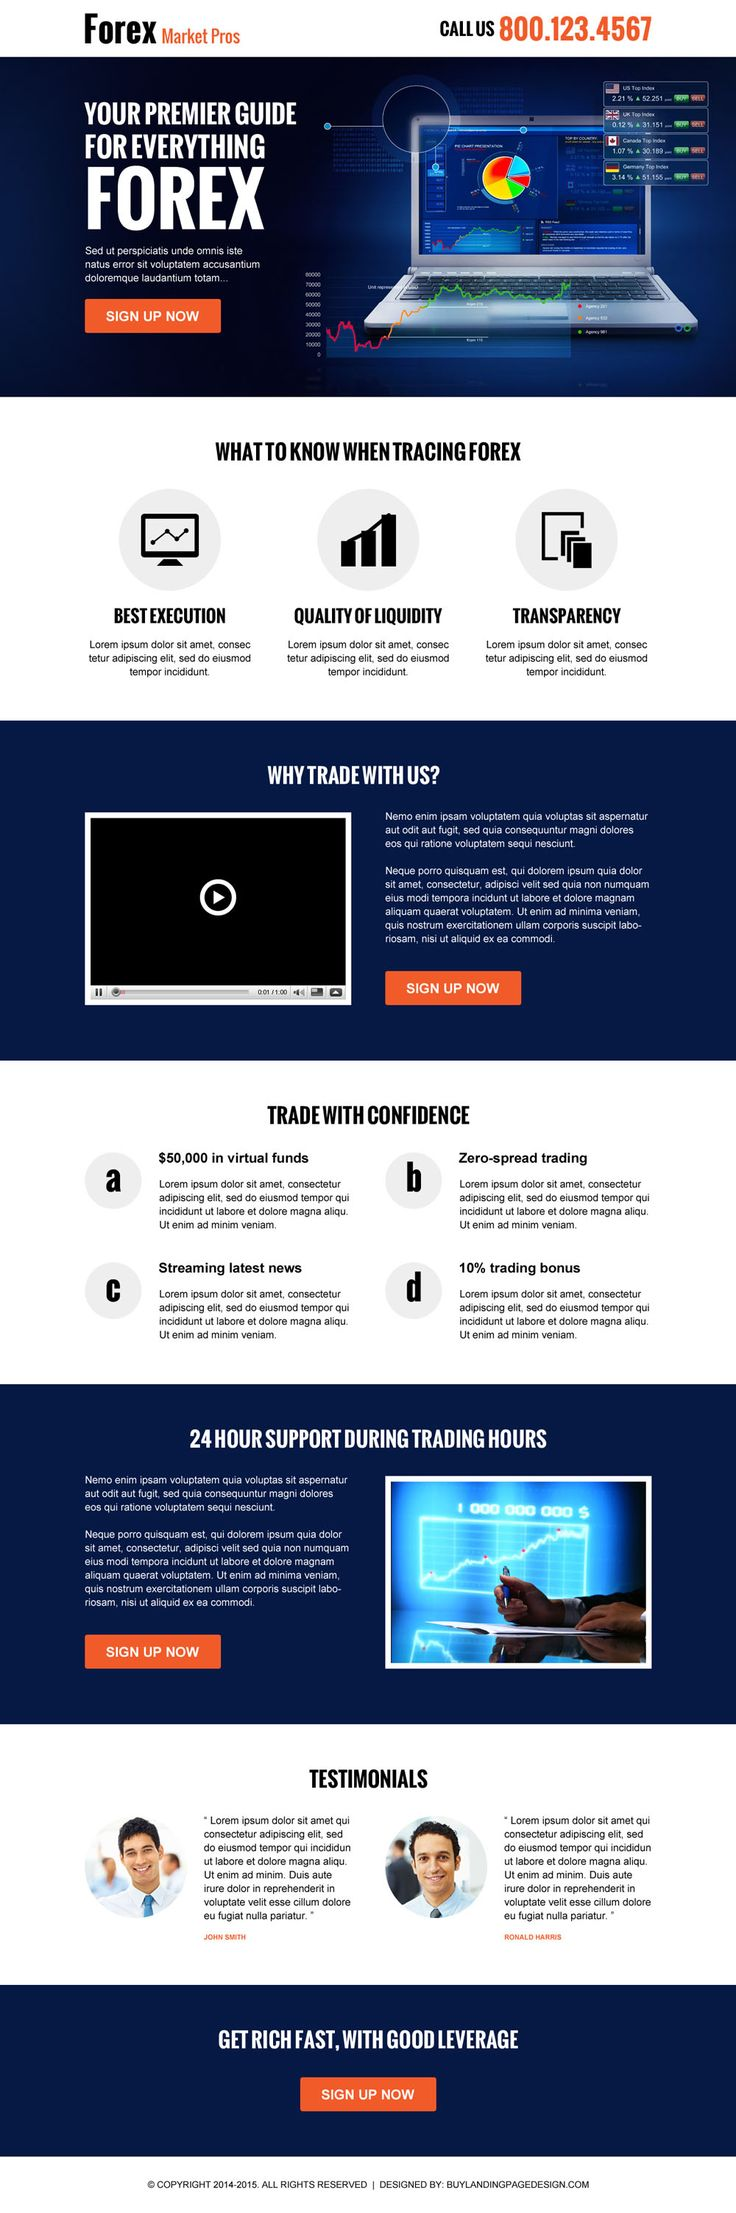 forex marketing guide call to action responsive landing page design template